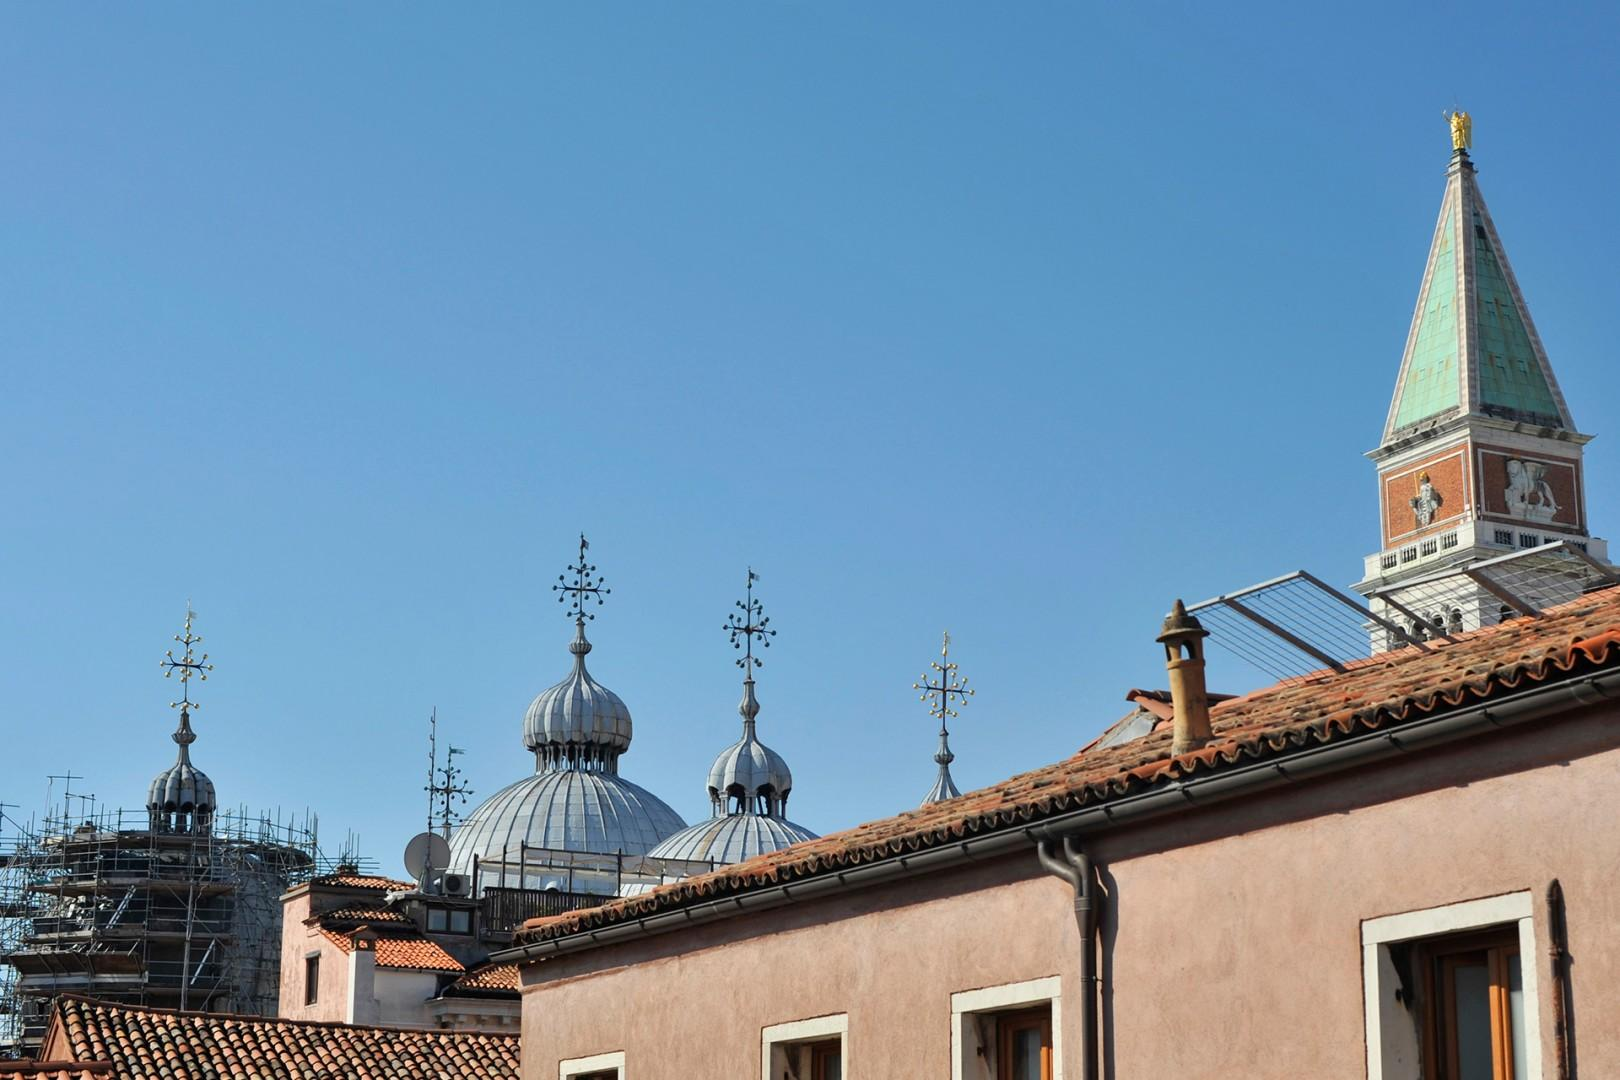 The cupolas of San Marco are not far away!